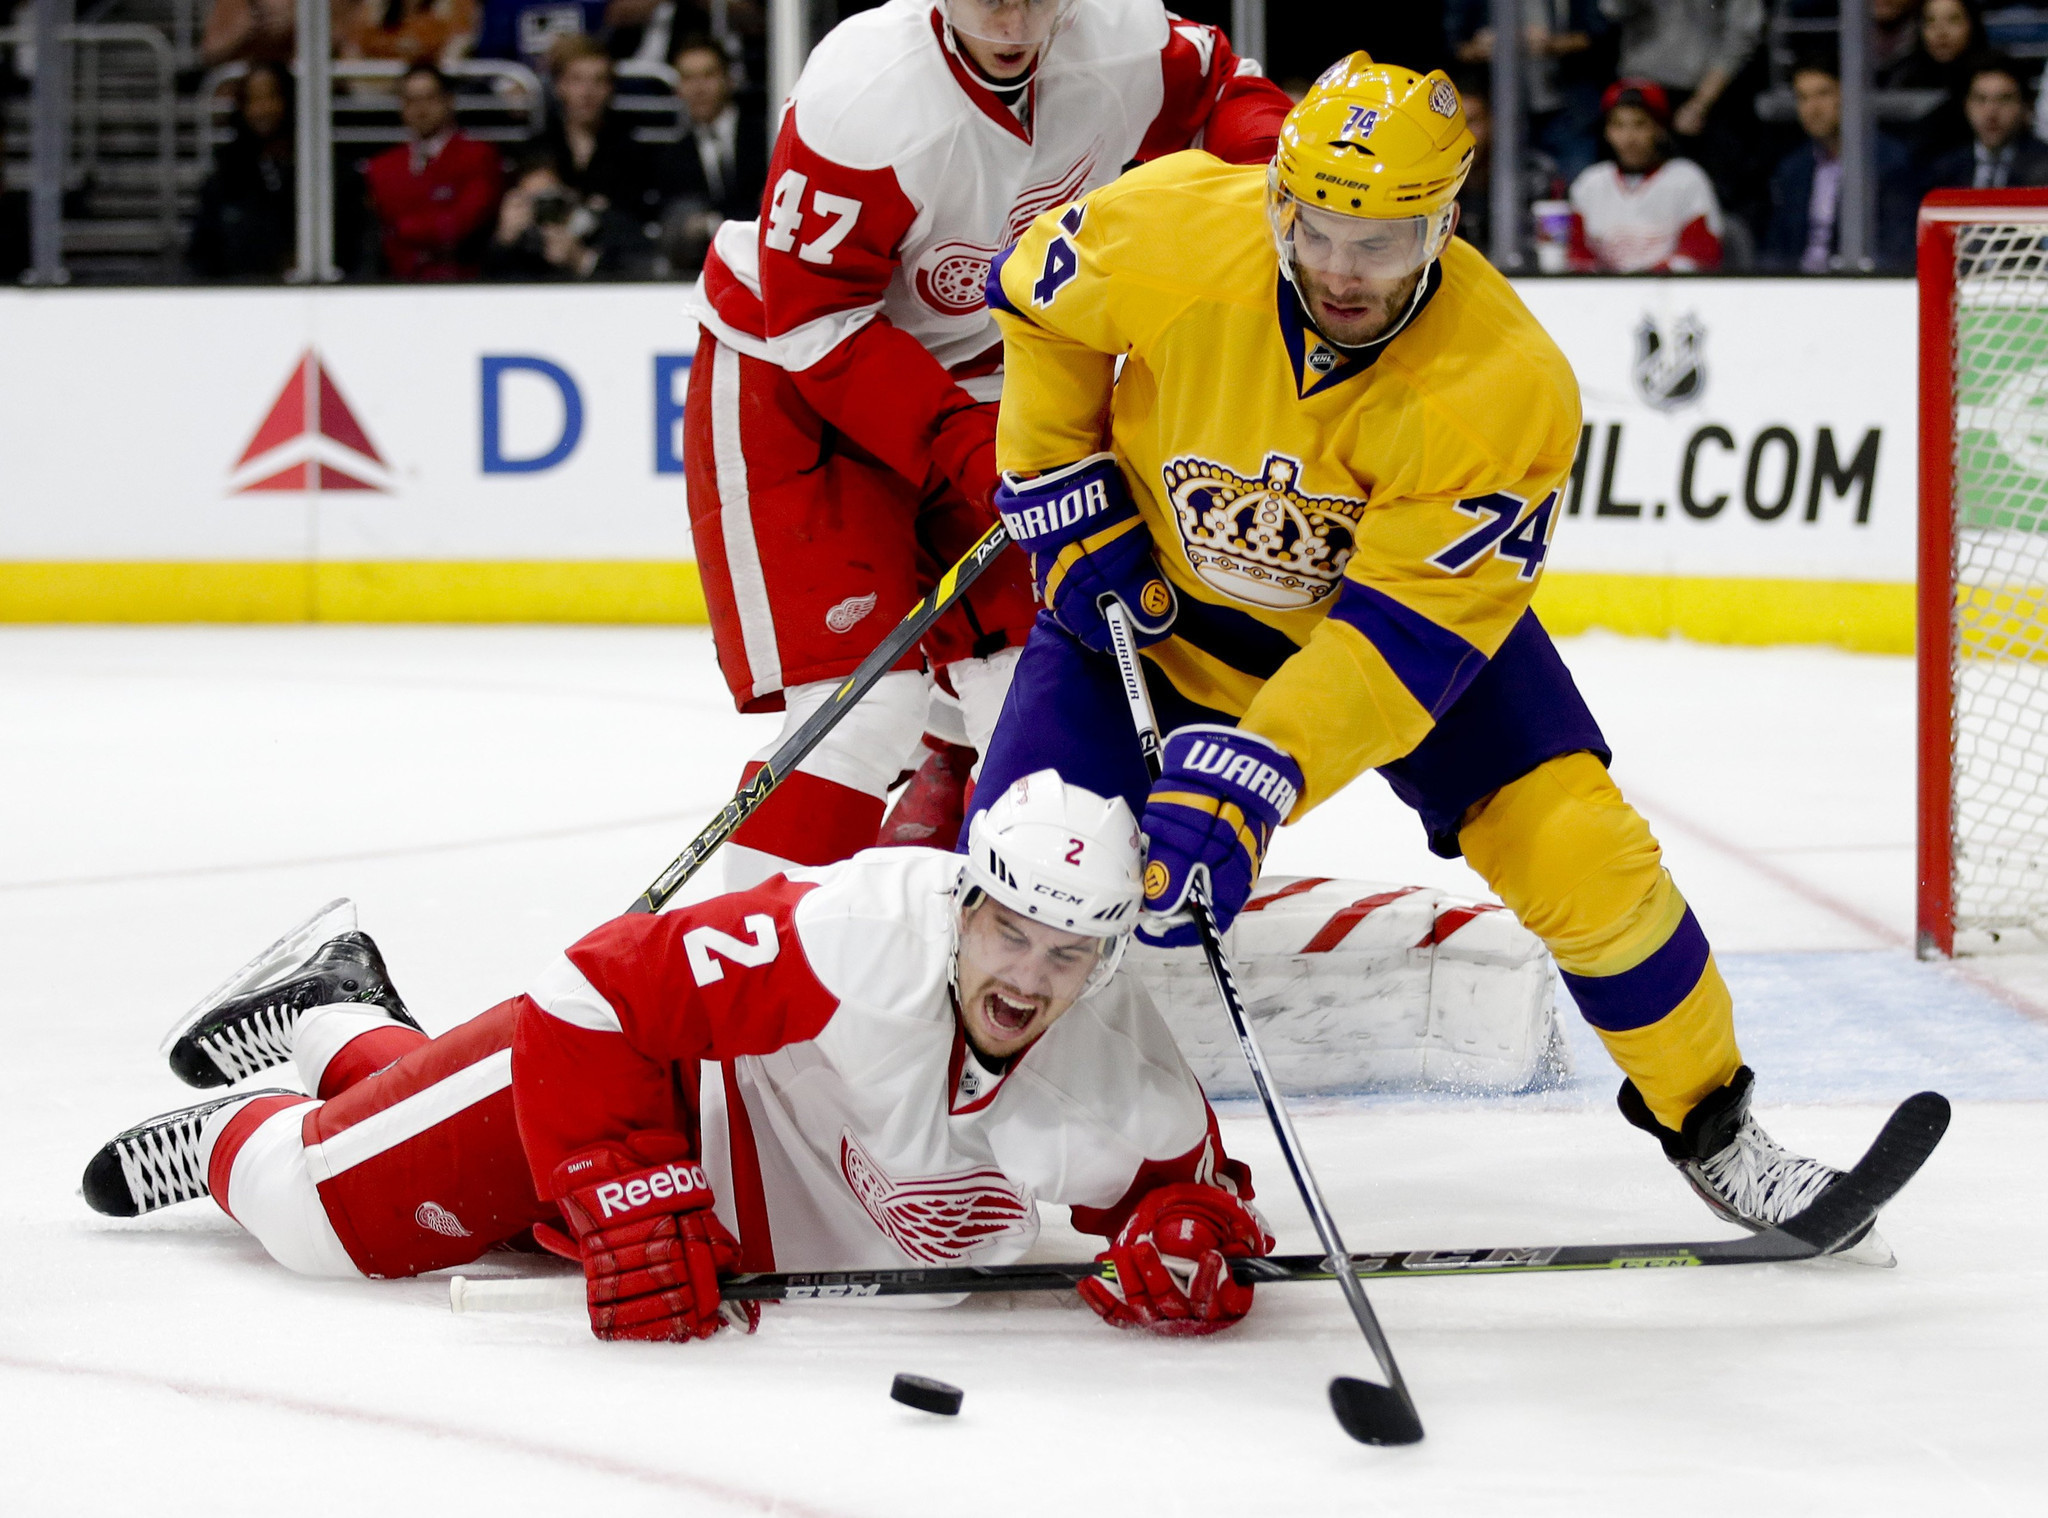 Kings Make It Eight Wins In A Row With 1-0 Victory Over Red Wings